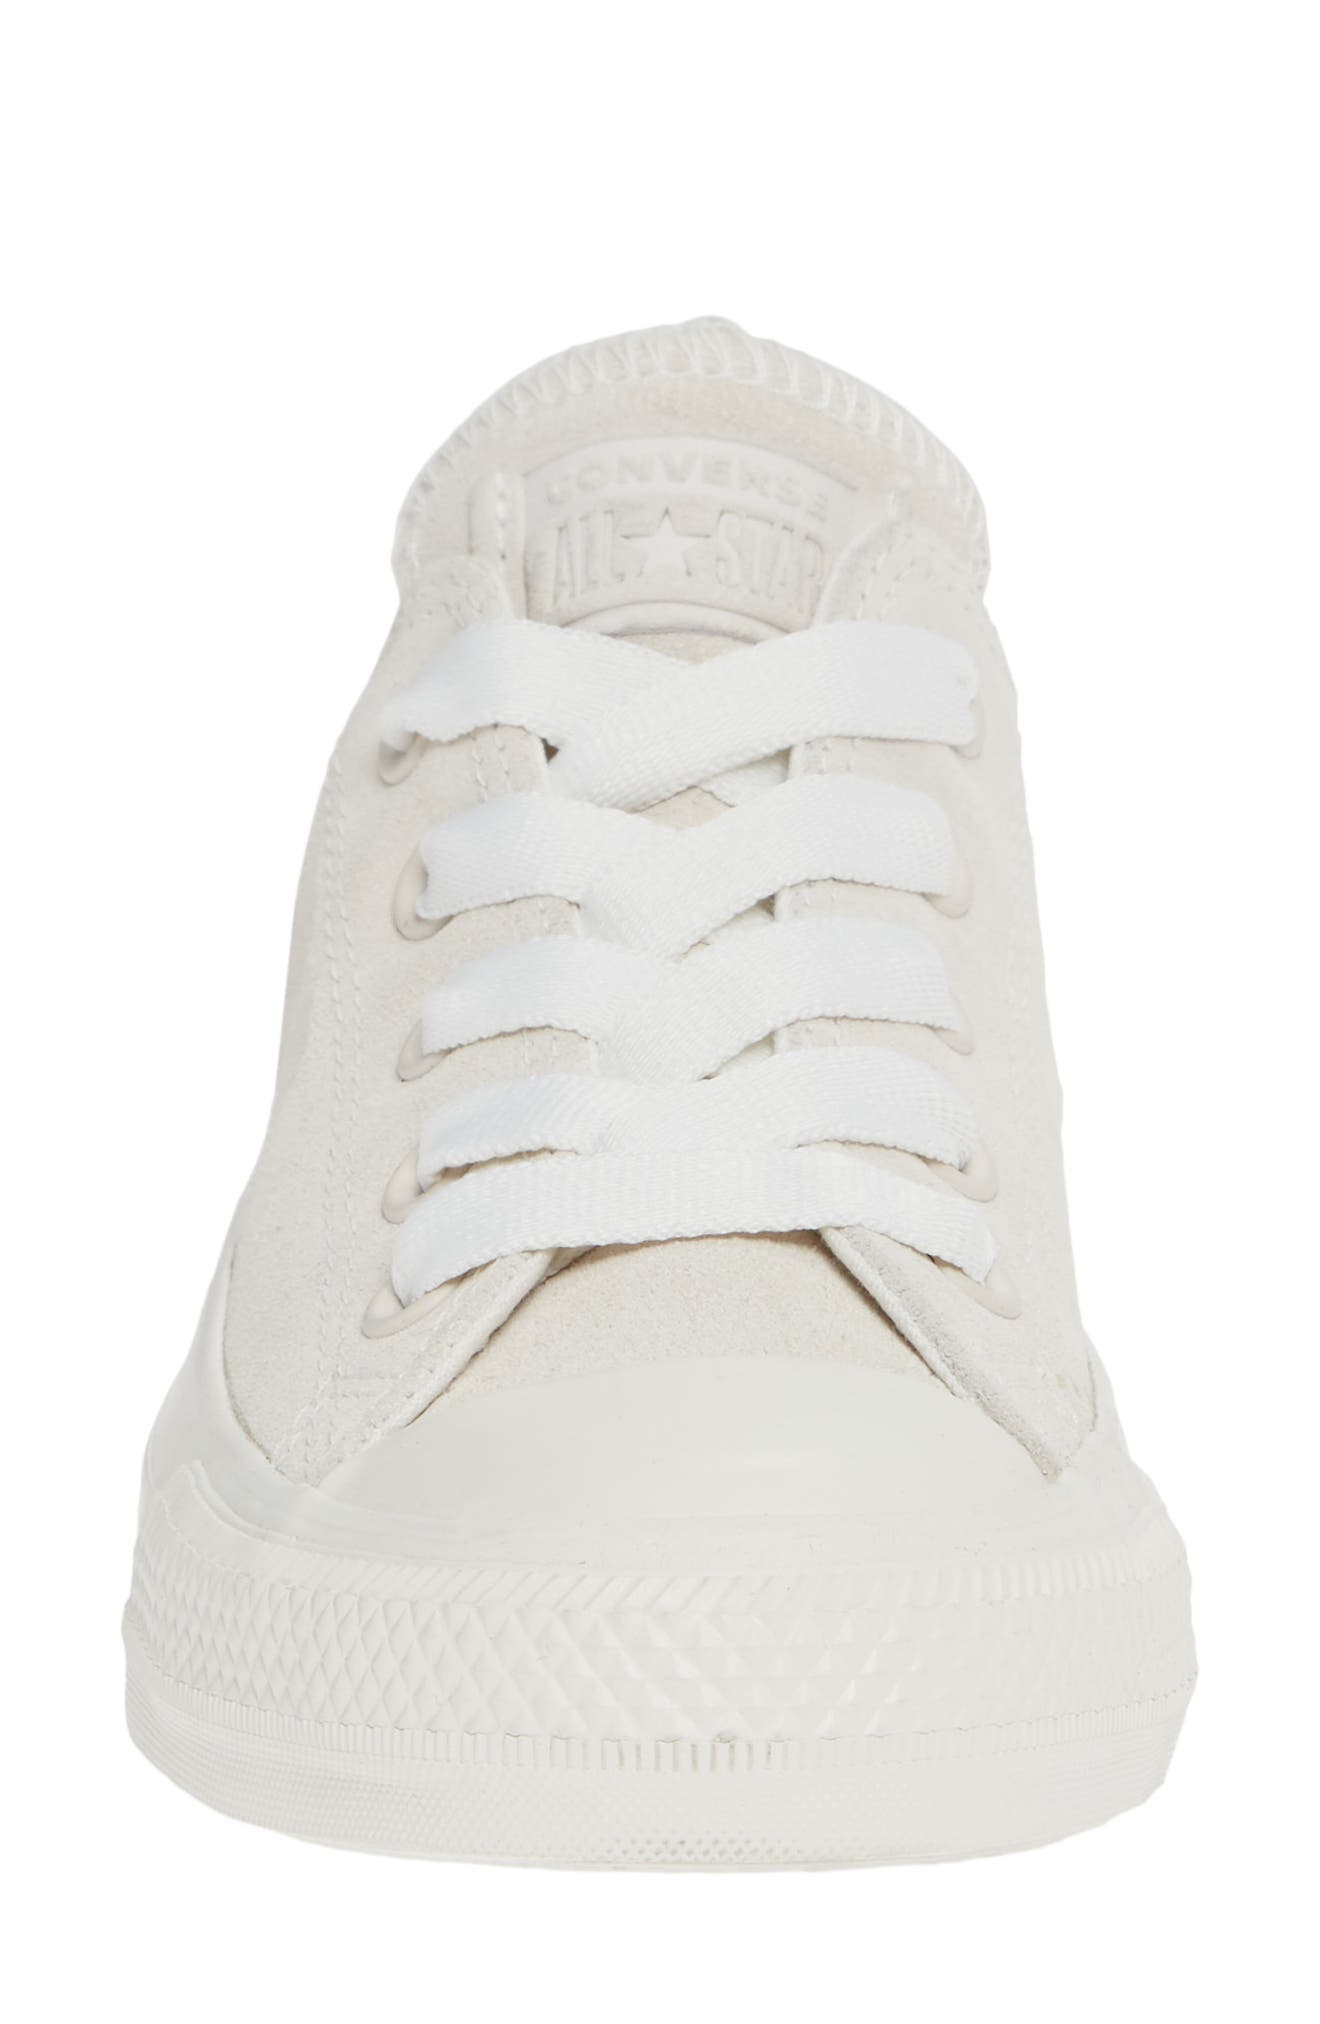 Chuck Taylor<sup>®</sup> All Star<sup>®</sup> Ox Sneaker,                             Alternate thumbnail 4, color,                             VINTAGE WHITE SUEDE